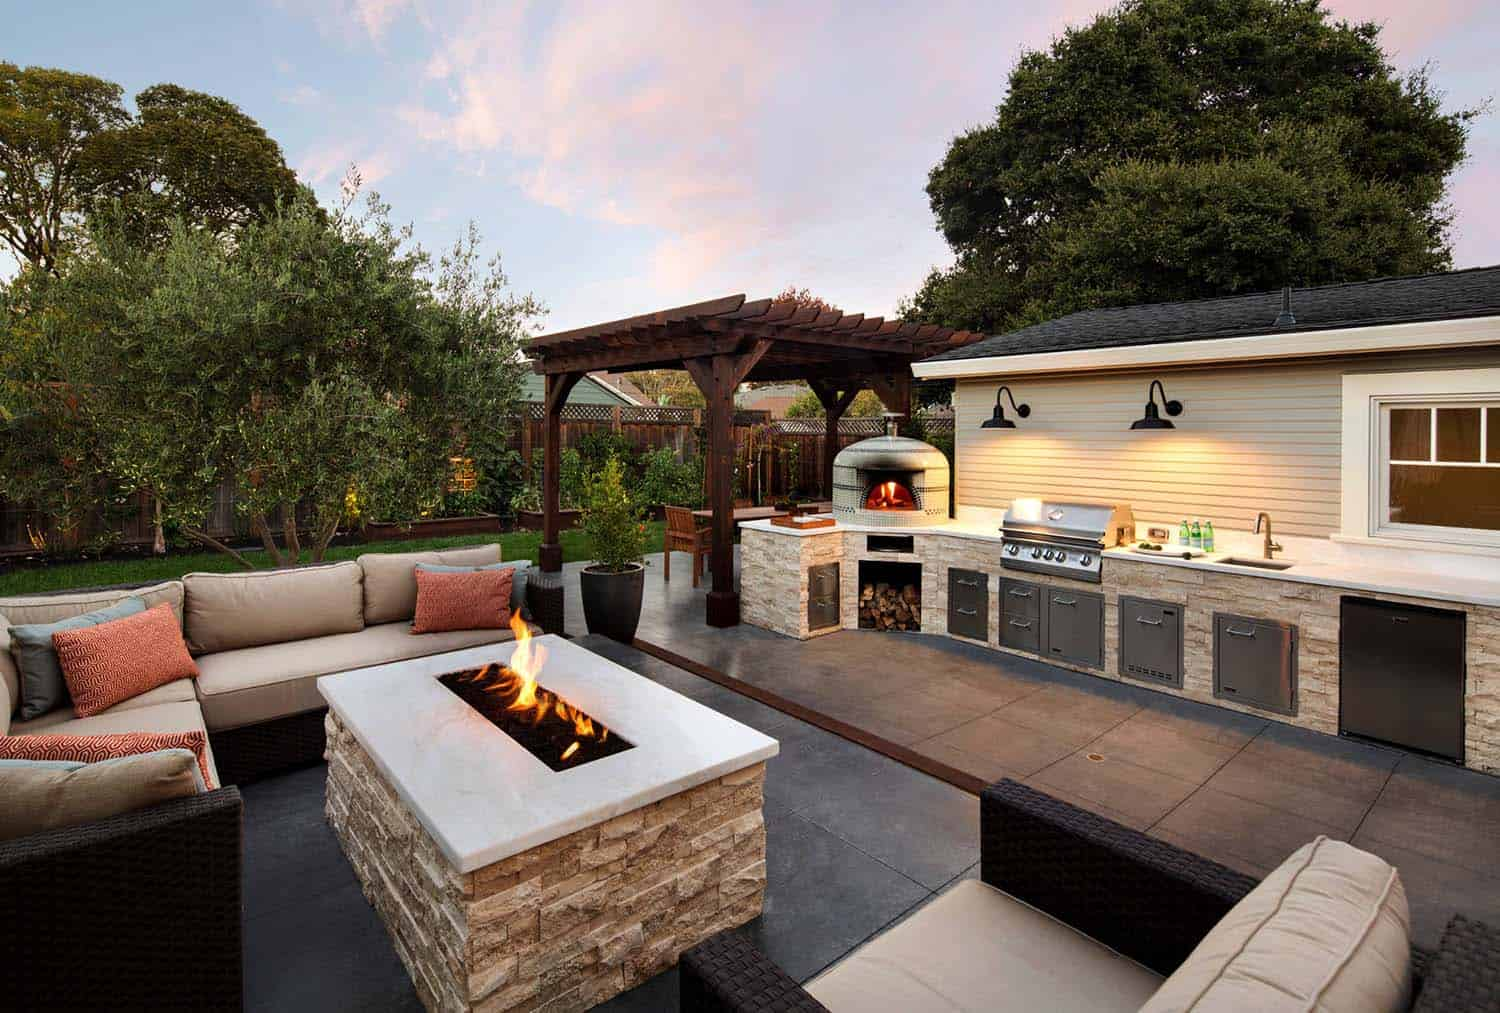 33 Fabulous Ideas For Creating Beautiful Outdoor Living Spaces on Garden Living Space id=24142